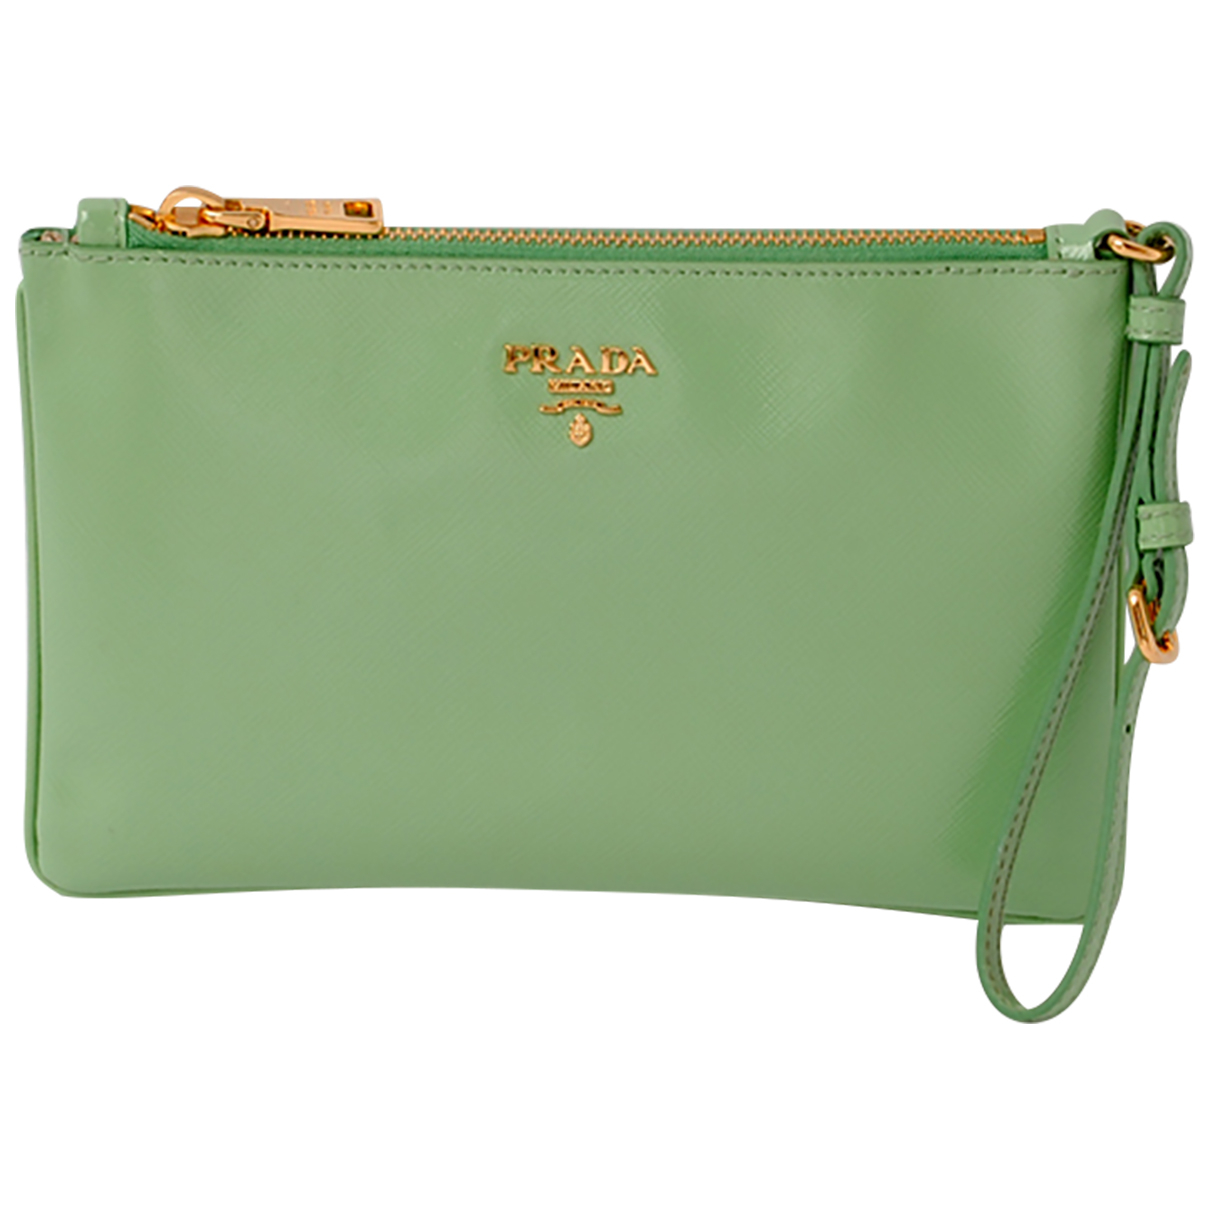 Prada \N Clutch in  Gruen Leder